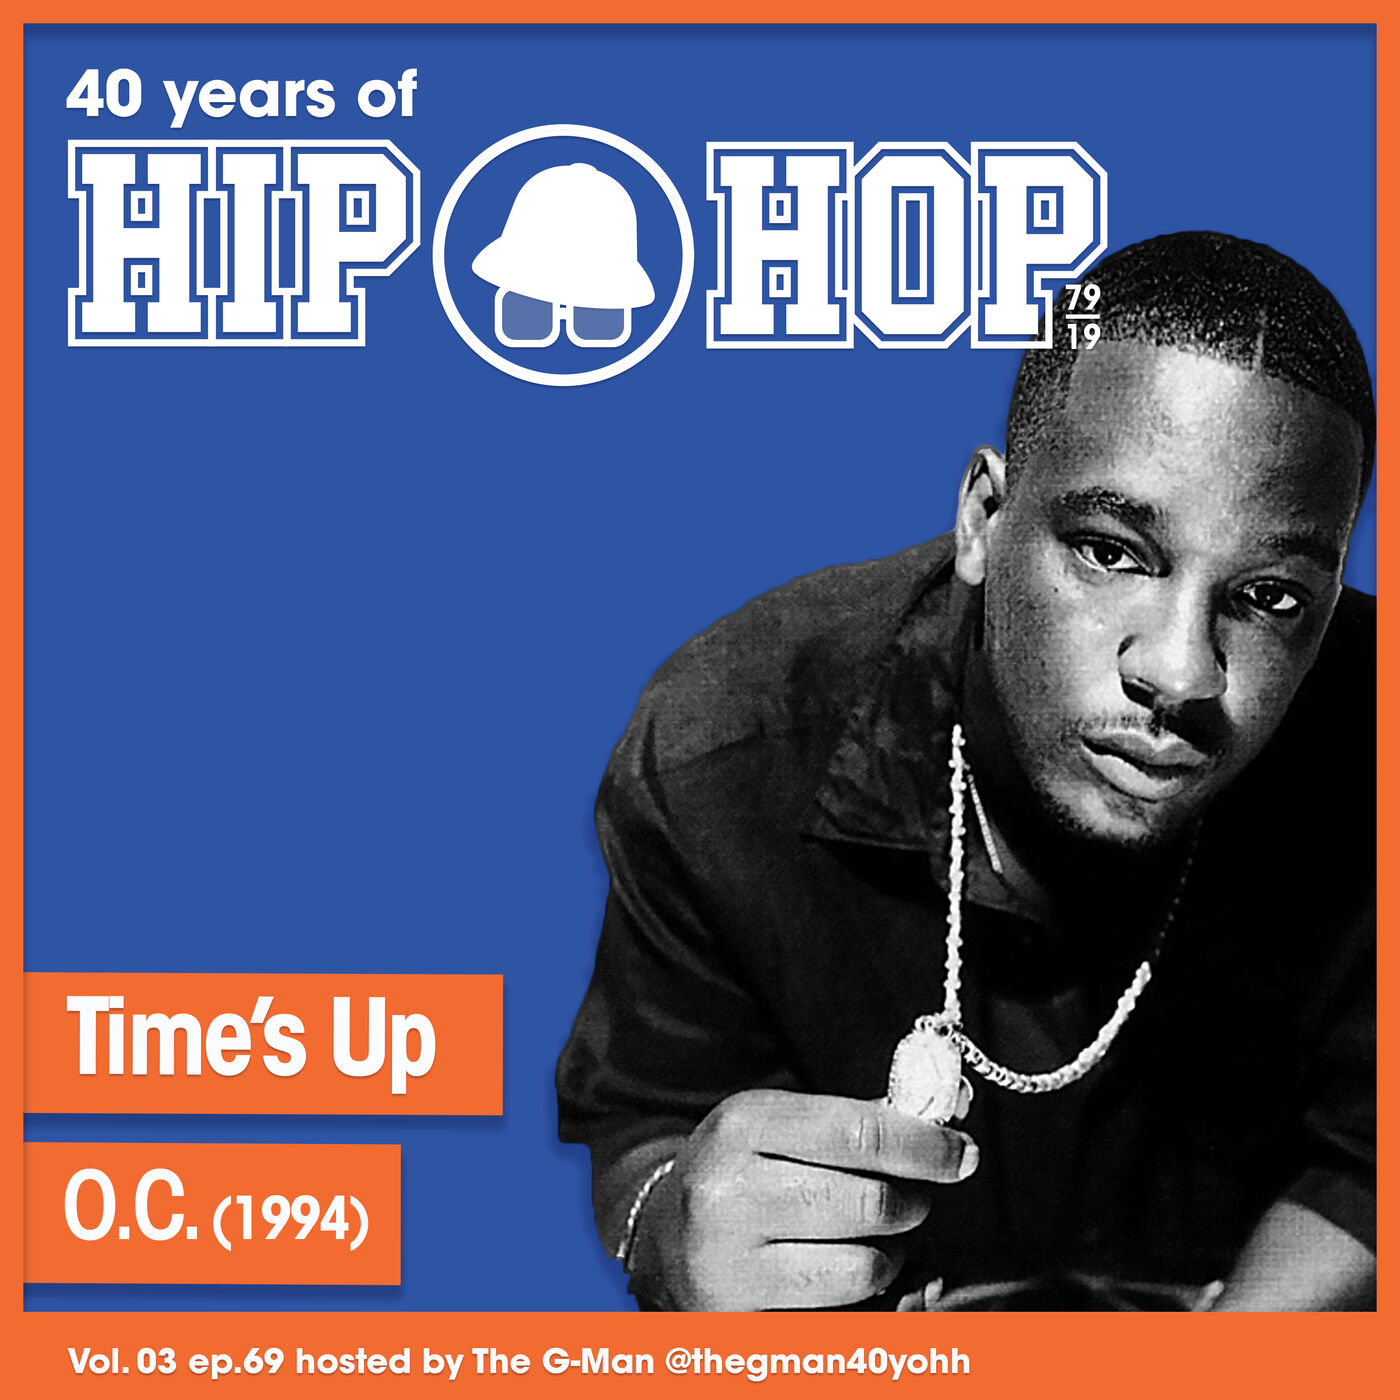 Vol.03 E69 - Time's Up by O.C. released in 1994 - 40 Years of Hip Hop